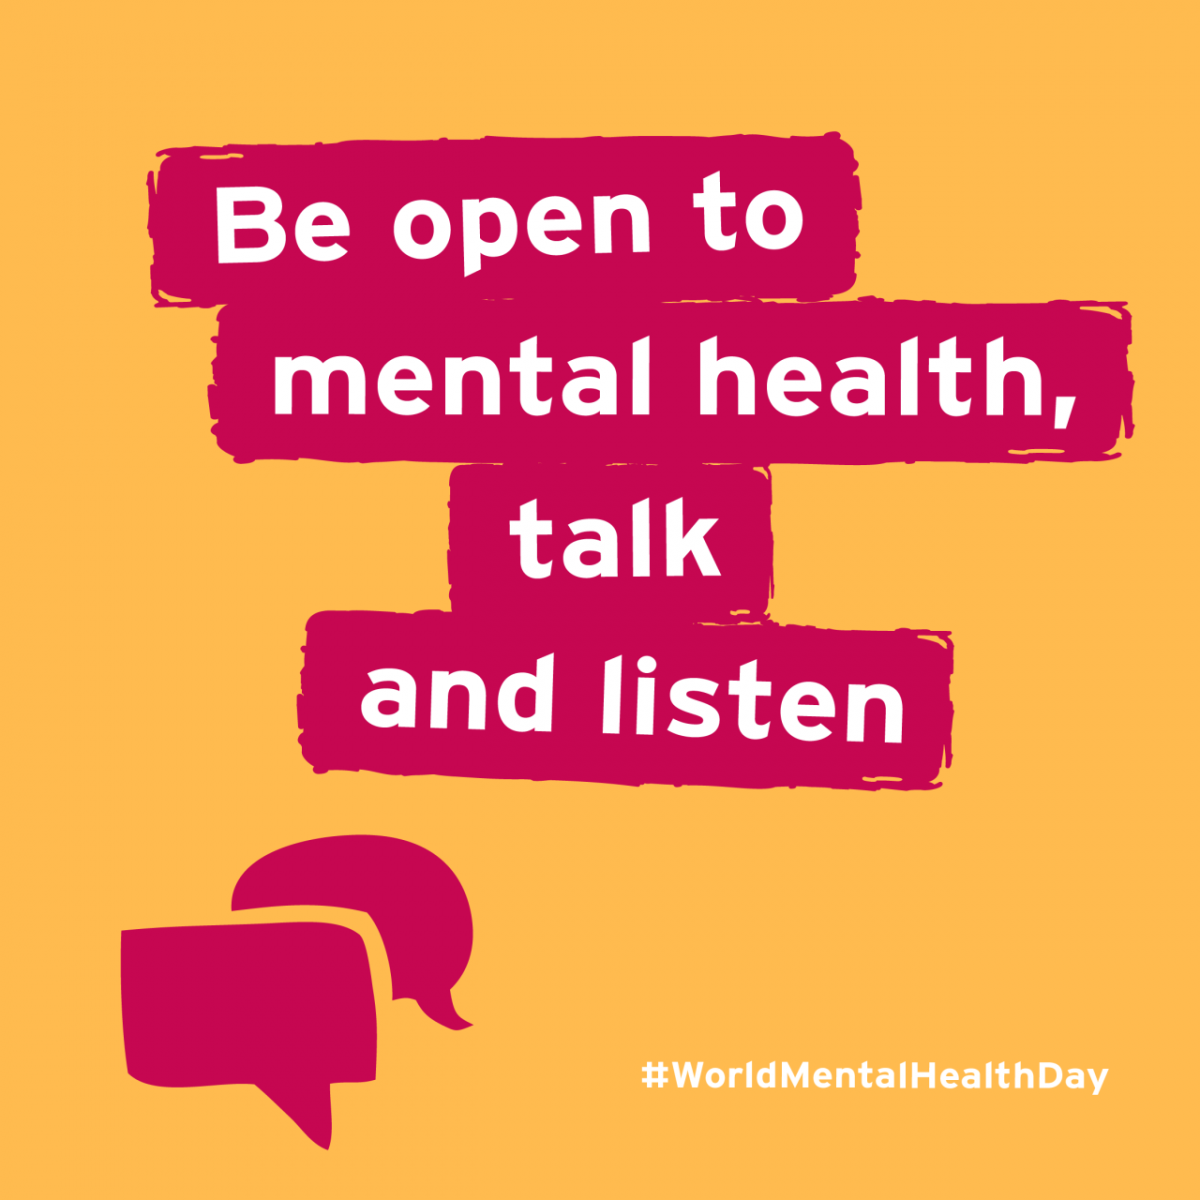 "White text against a highlight which reads ""Be open to mental health, talk and listen"" against a yellow background with a pink illustration of speech bubbles. There is also a hashtag for #World MentalHealthDay in the right corner."